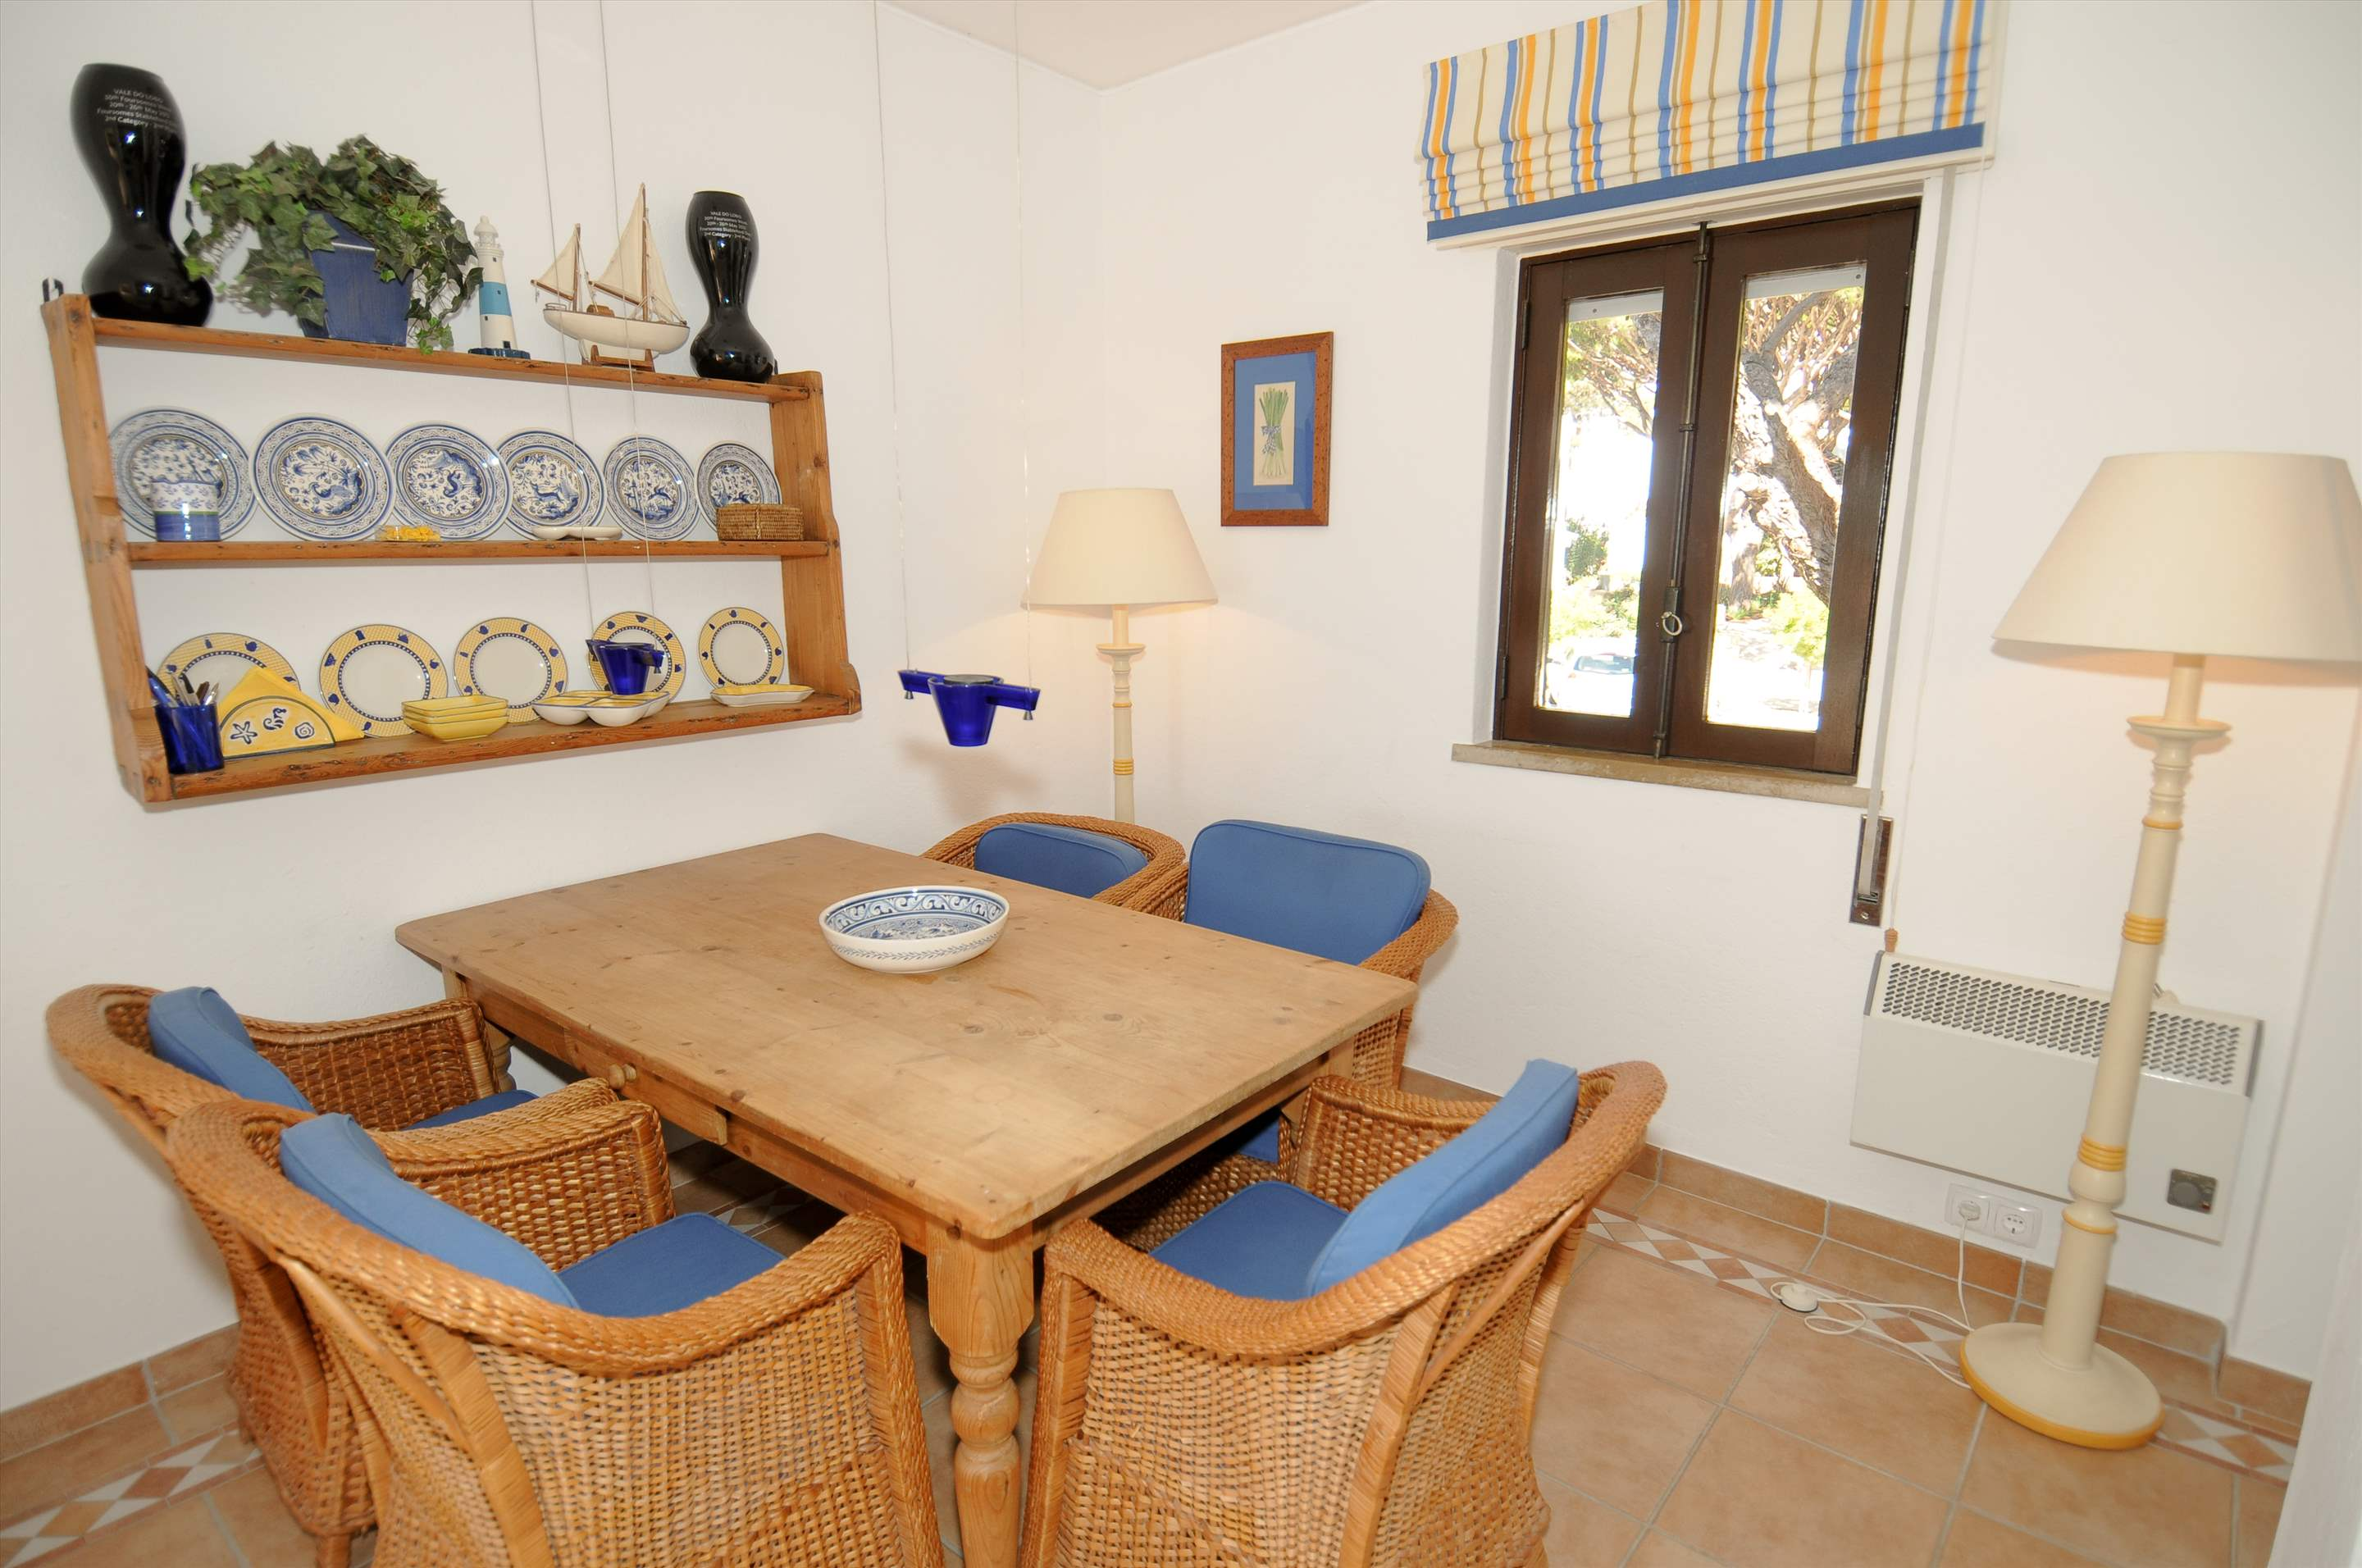 Villa Giroud, 2 bedroom villa in Vale do Lobo, Algarve Photo #6